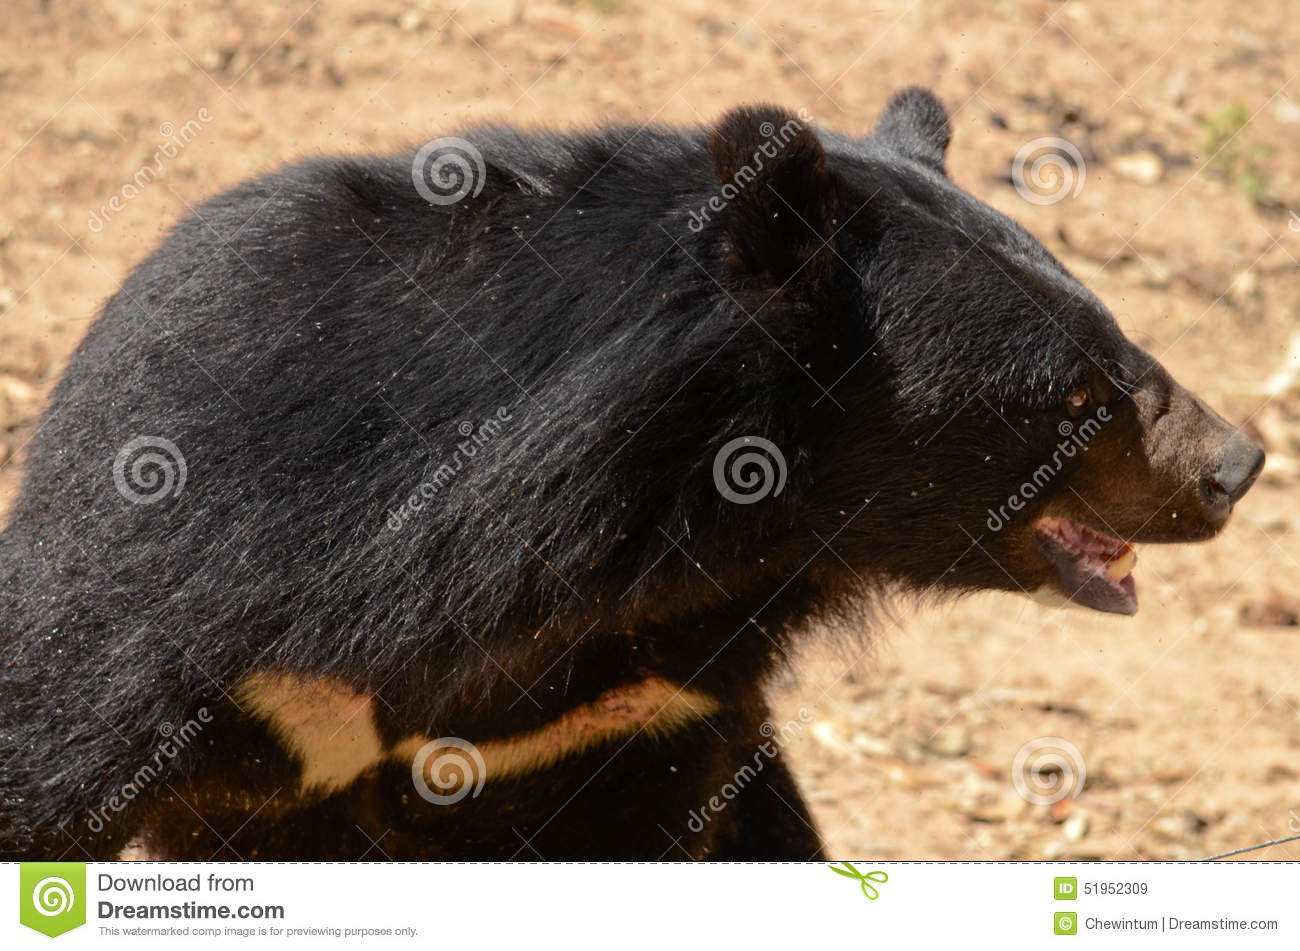 asiatic black bear stock image image of mountains wilderness